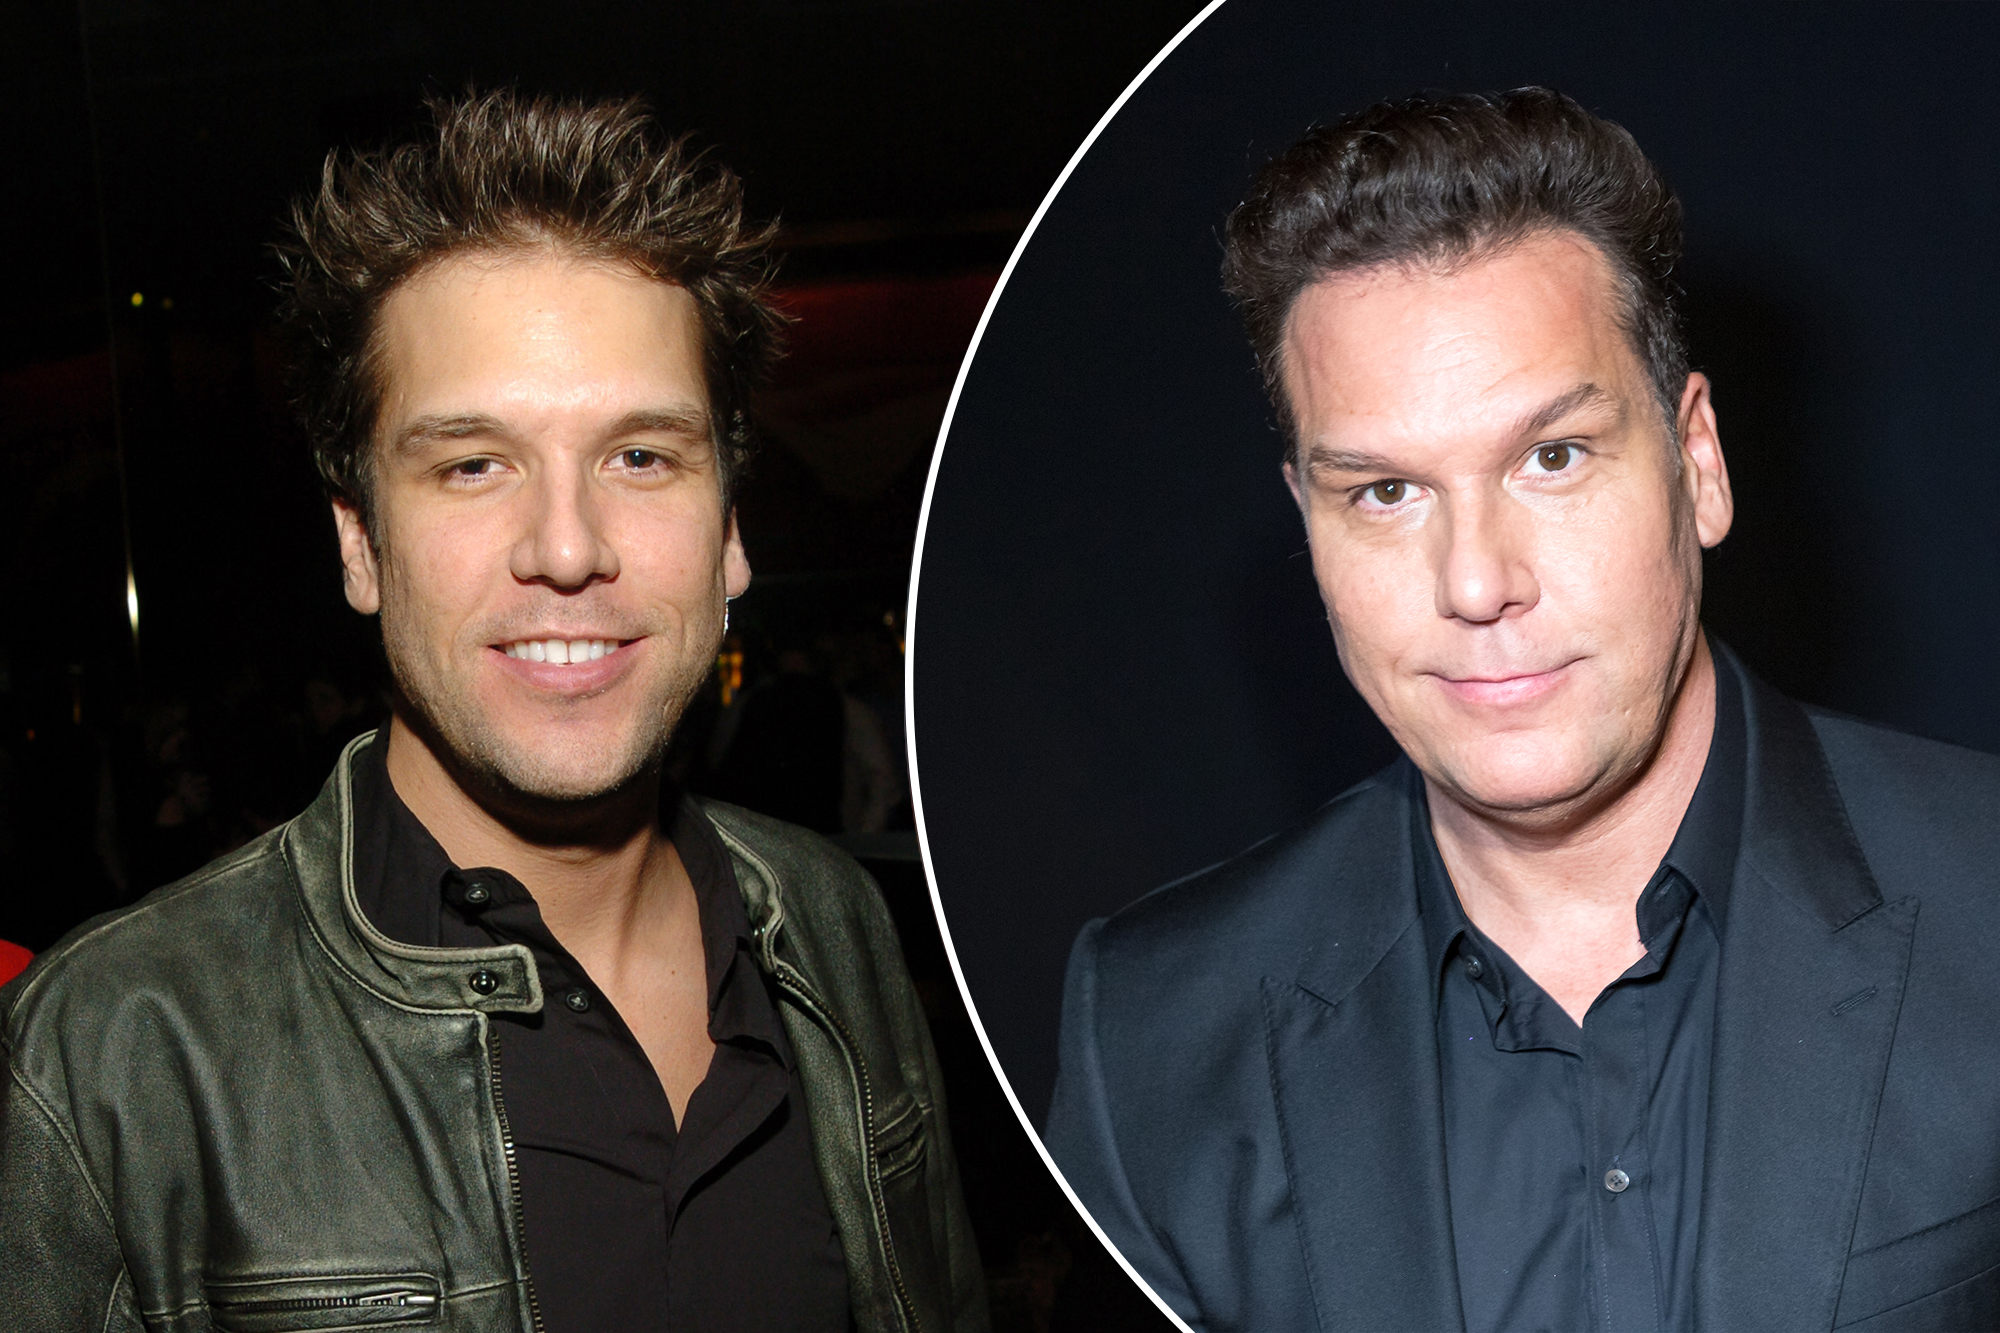 What happened to Dane Cook's face?